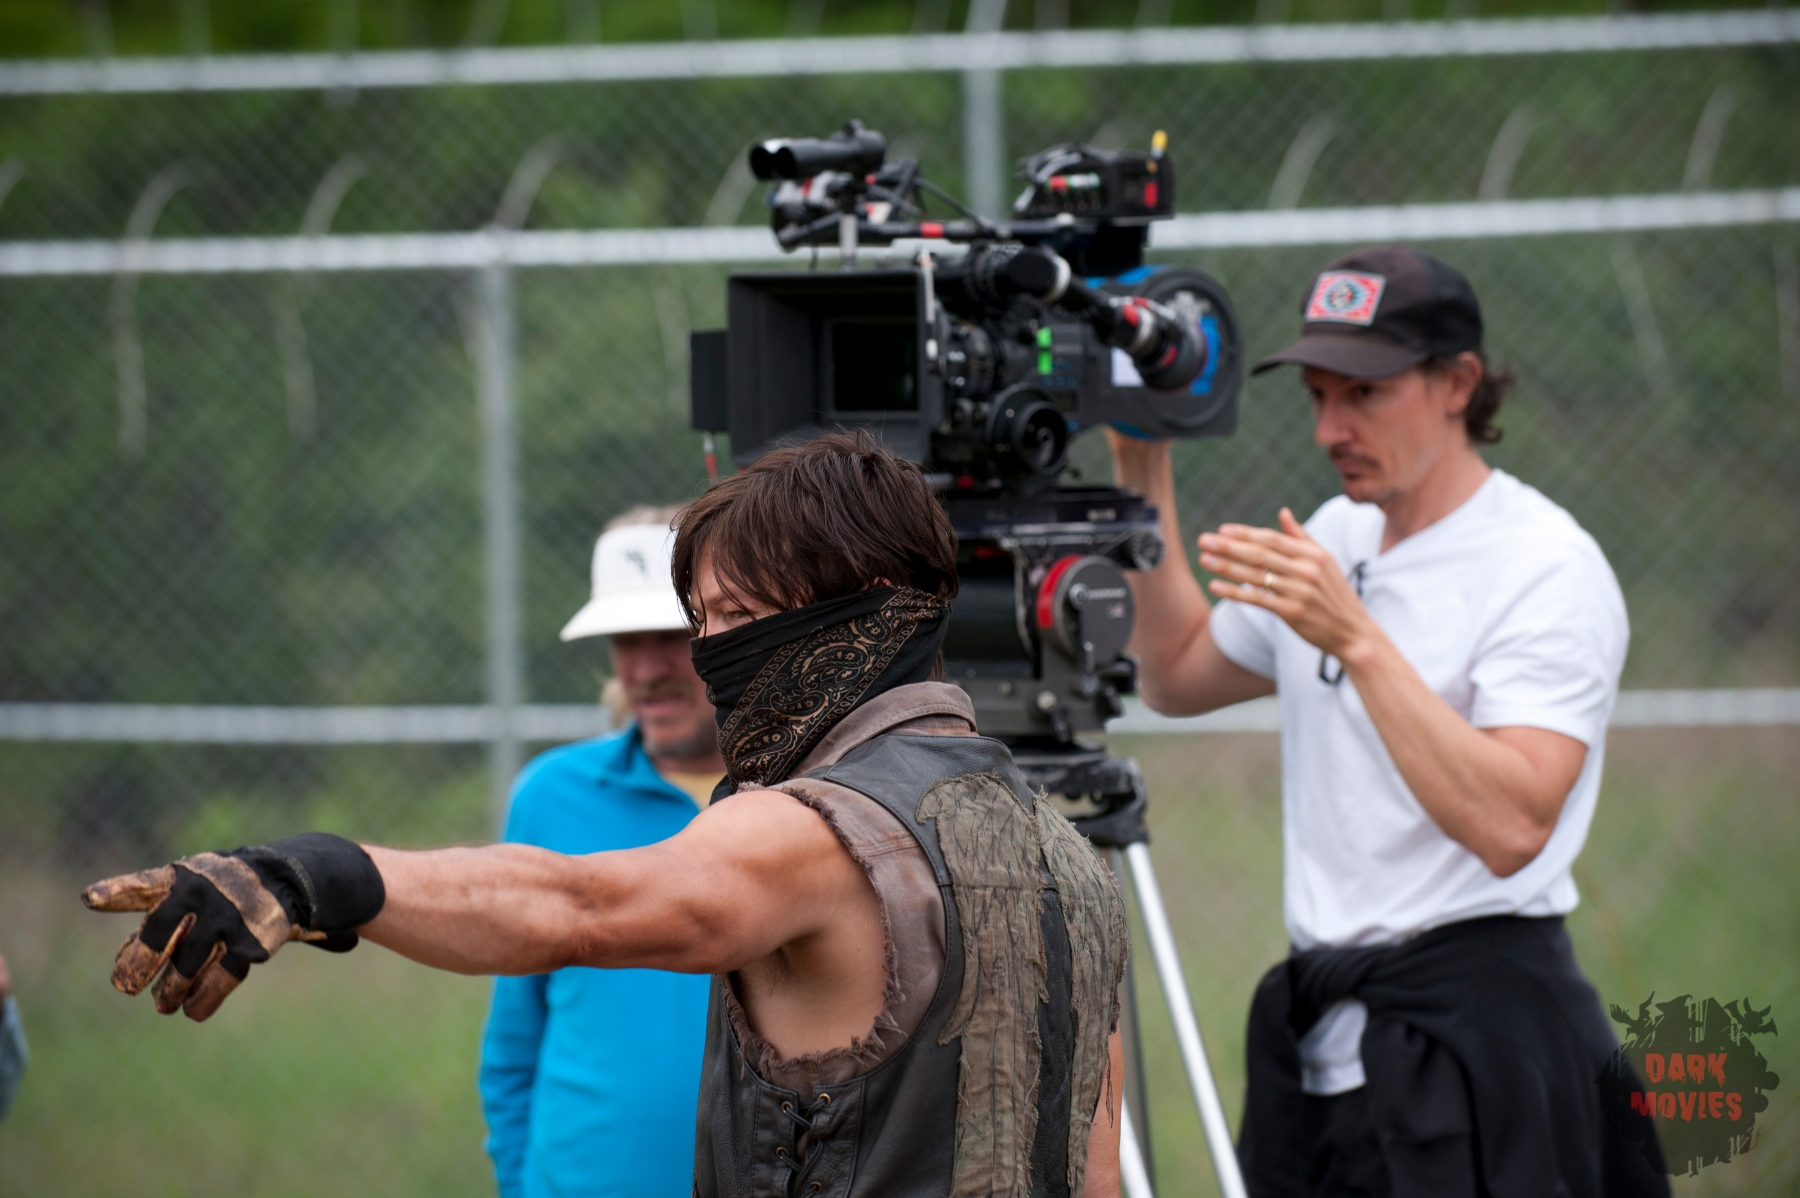 Daryl Dixon (Norman Reedus) - The Walking Dead _ Season 4, Episode 2 _ BTS - Photo Credit: Gene Page/AMC